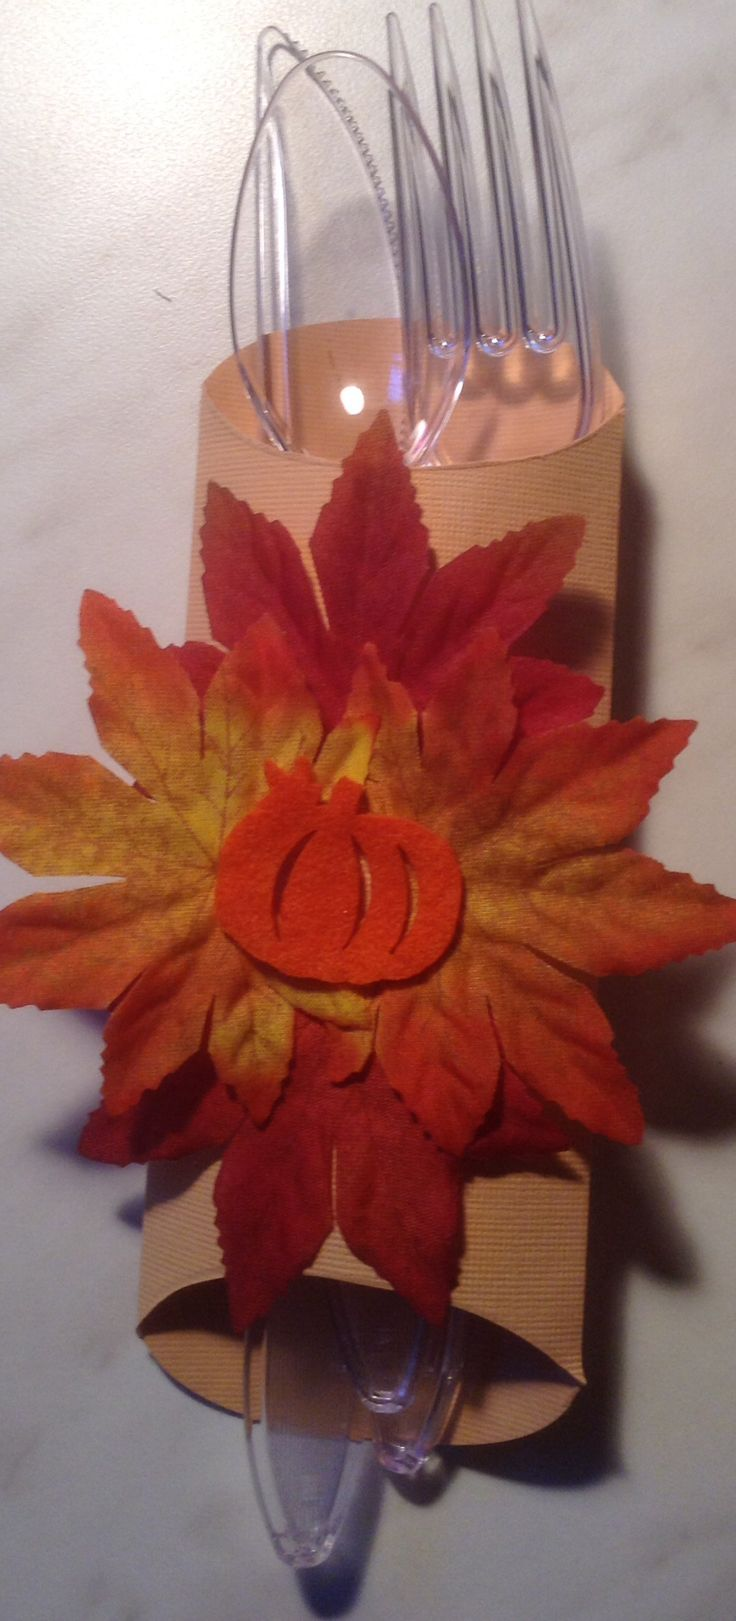 Utensil wrap for Thanksgiving or any fall related event. Made using a pillow box punch & 19 best Pillow box punch board images on Pinterest | Pillow box ... pillowsntoast.com